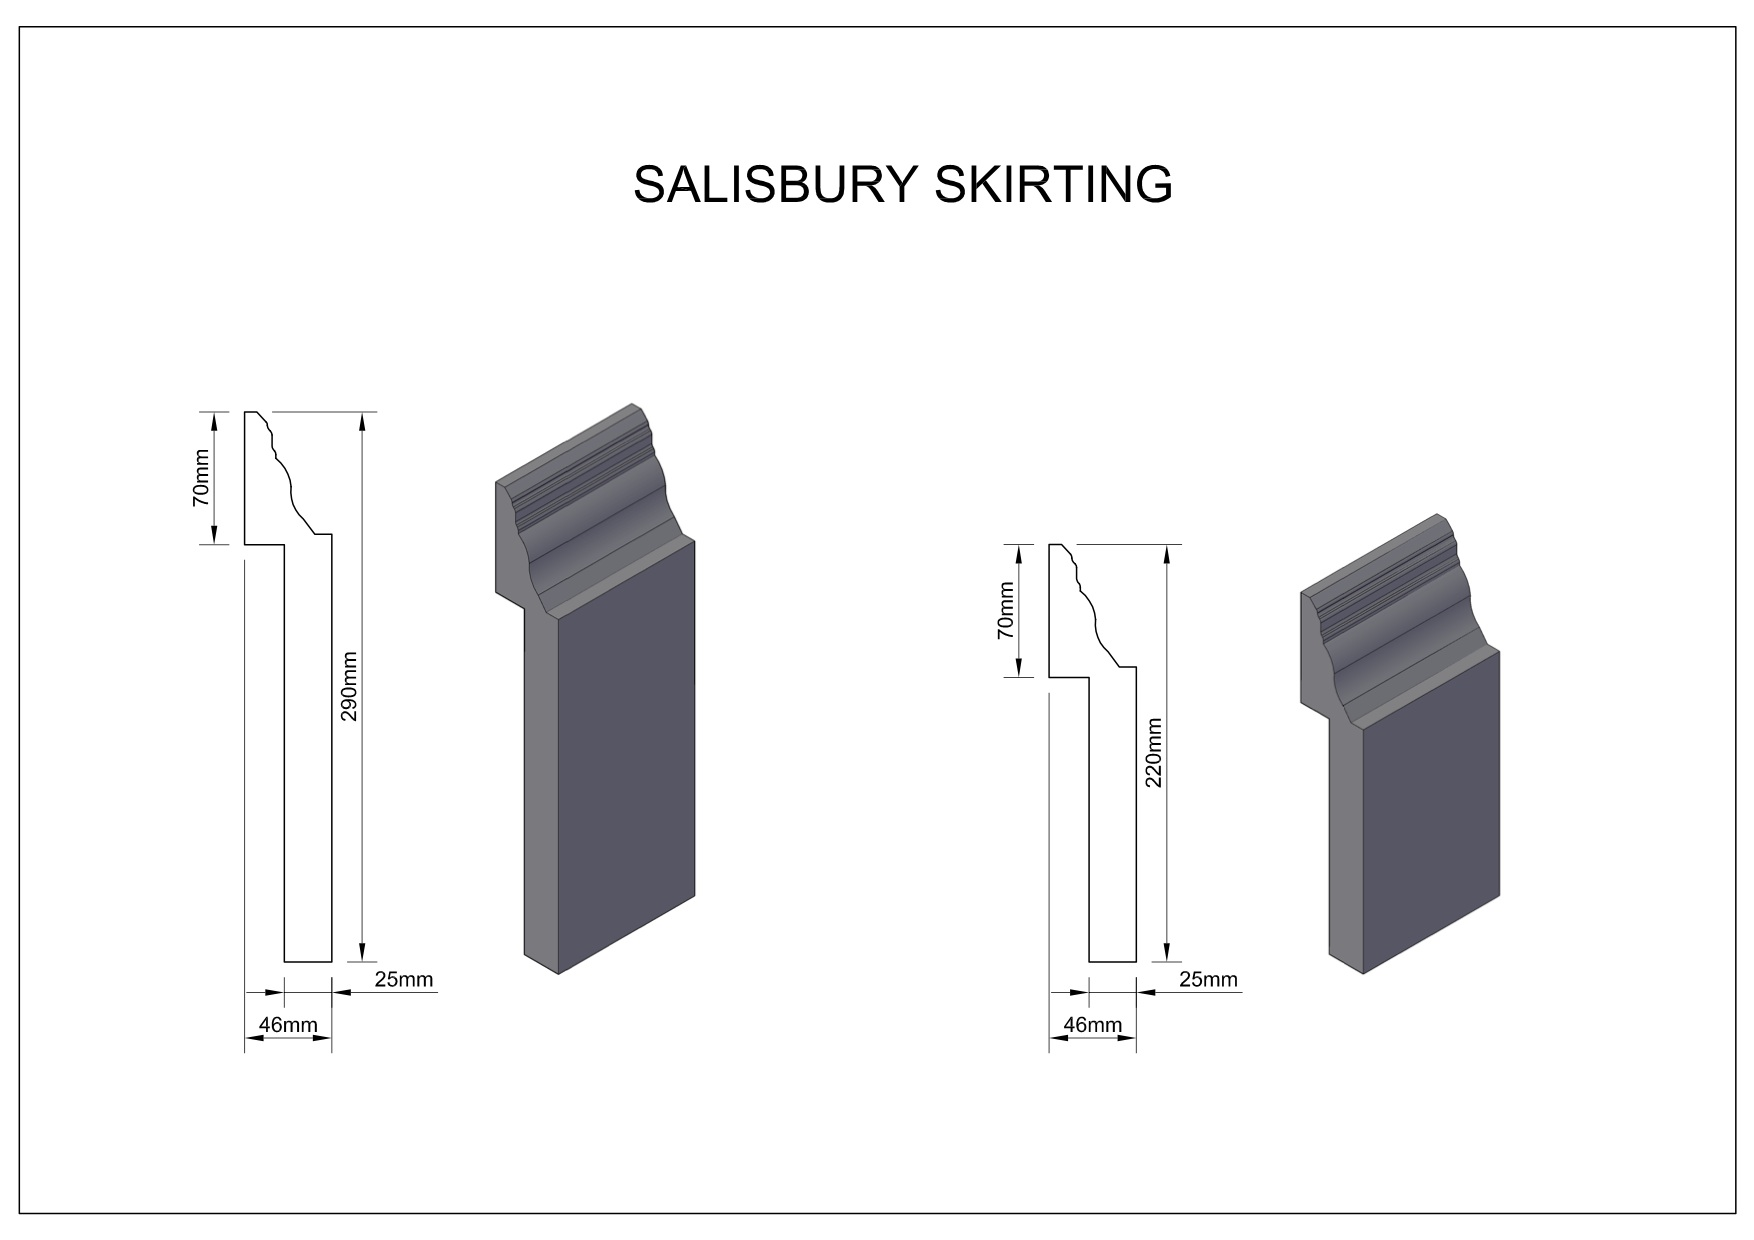 Salisbury-Skirting large